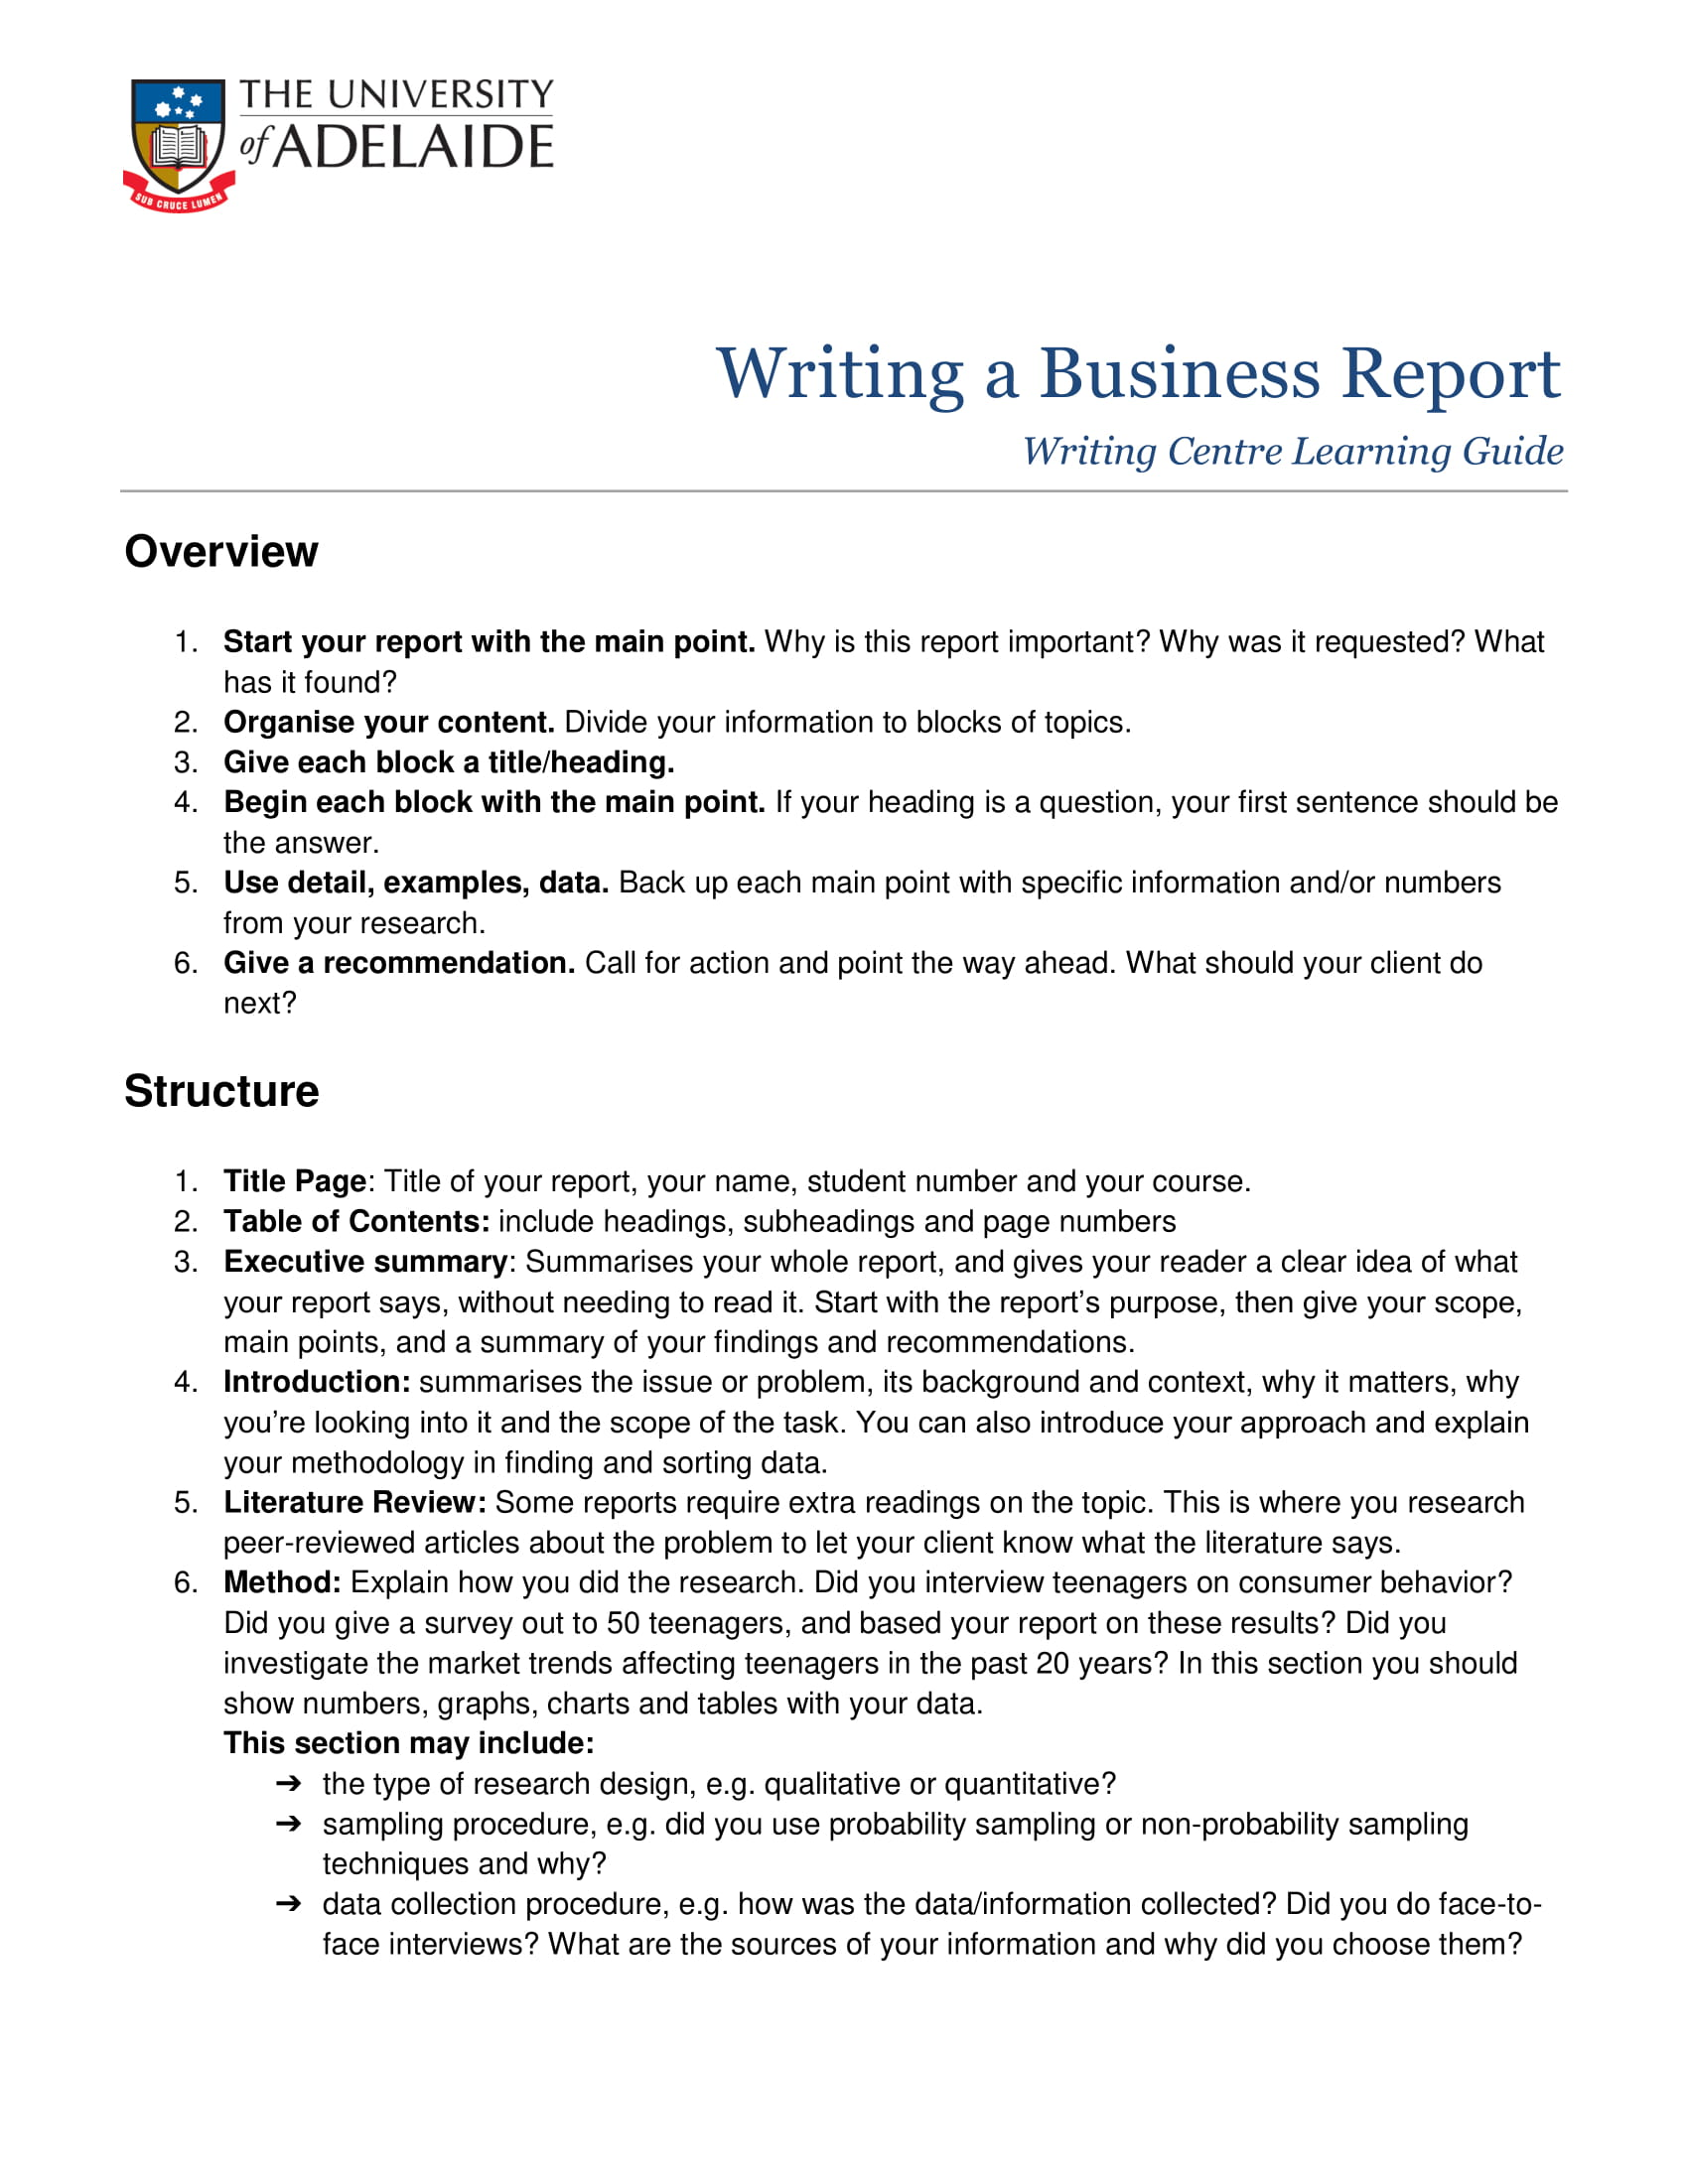 standard business report structure example 1